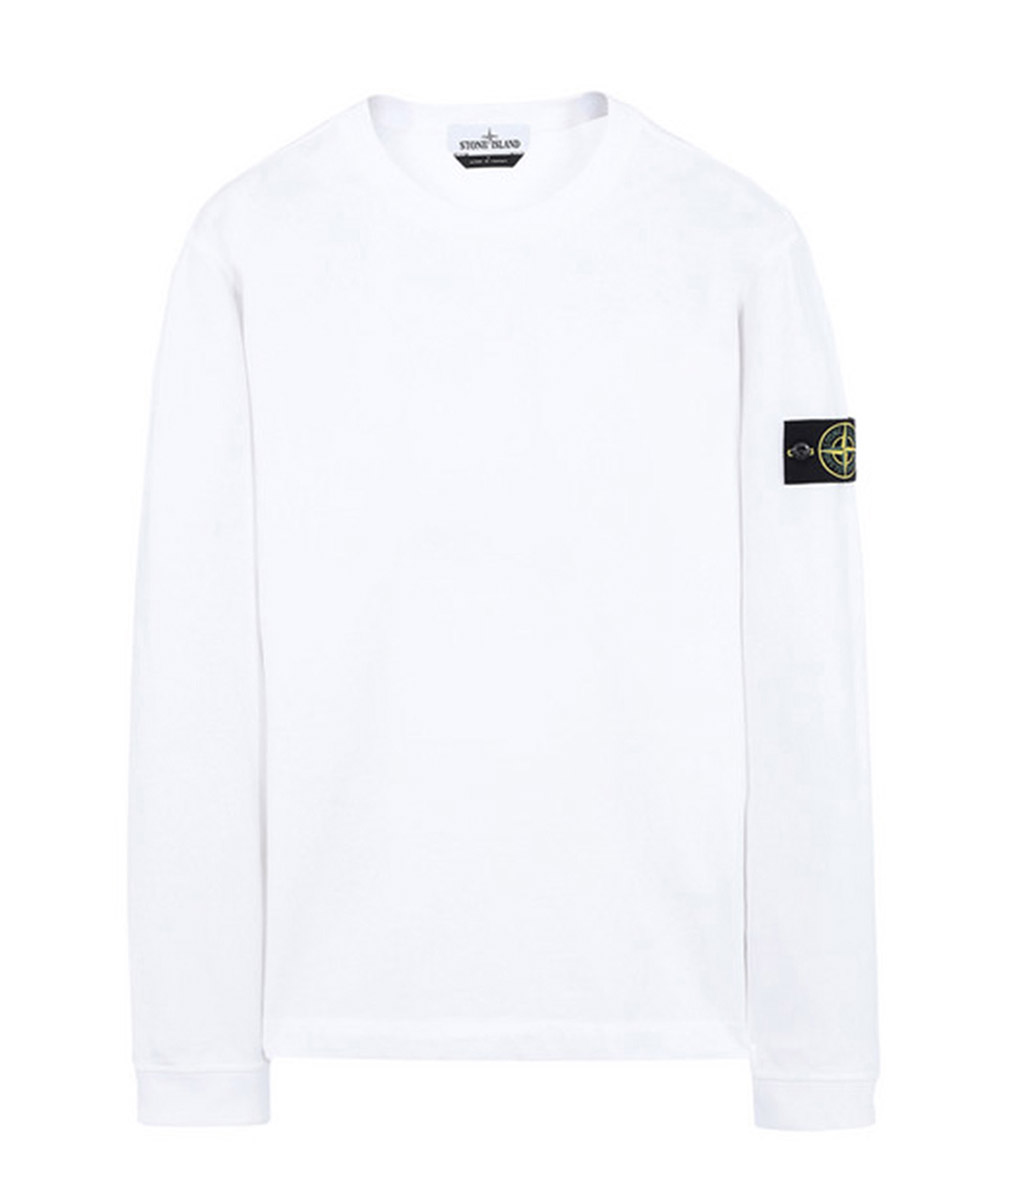 STONE ISLAND   Ai Stone land  All HEAVY COTTON JERSEY LONG SLEEVE T-SHIRTS    two colors  Heavy cotton jersey Longus Reeve Ron T cut-and-sew  701562150